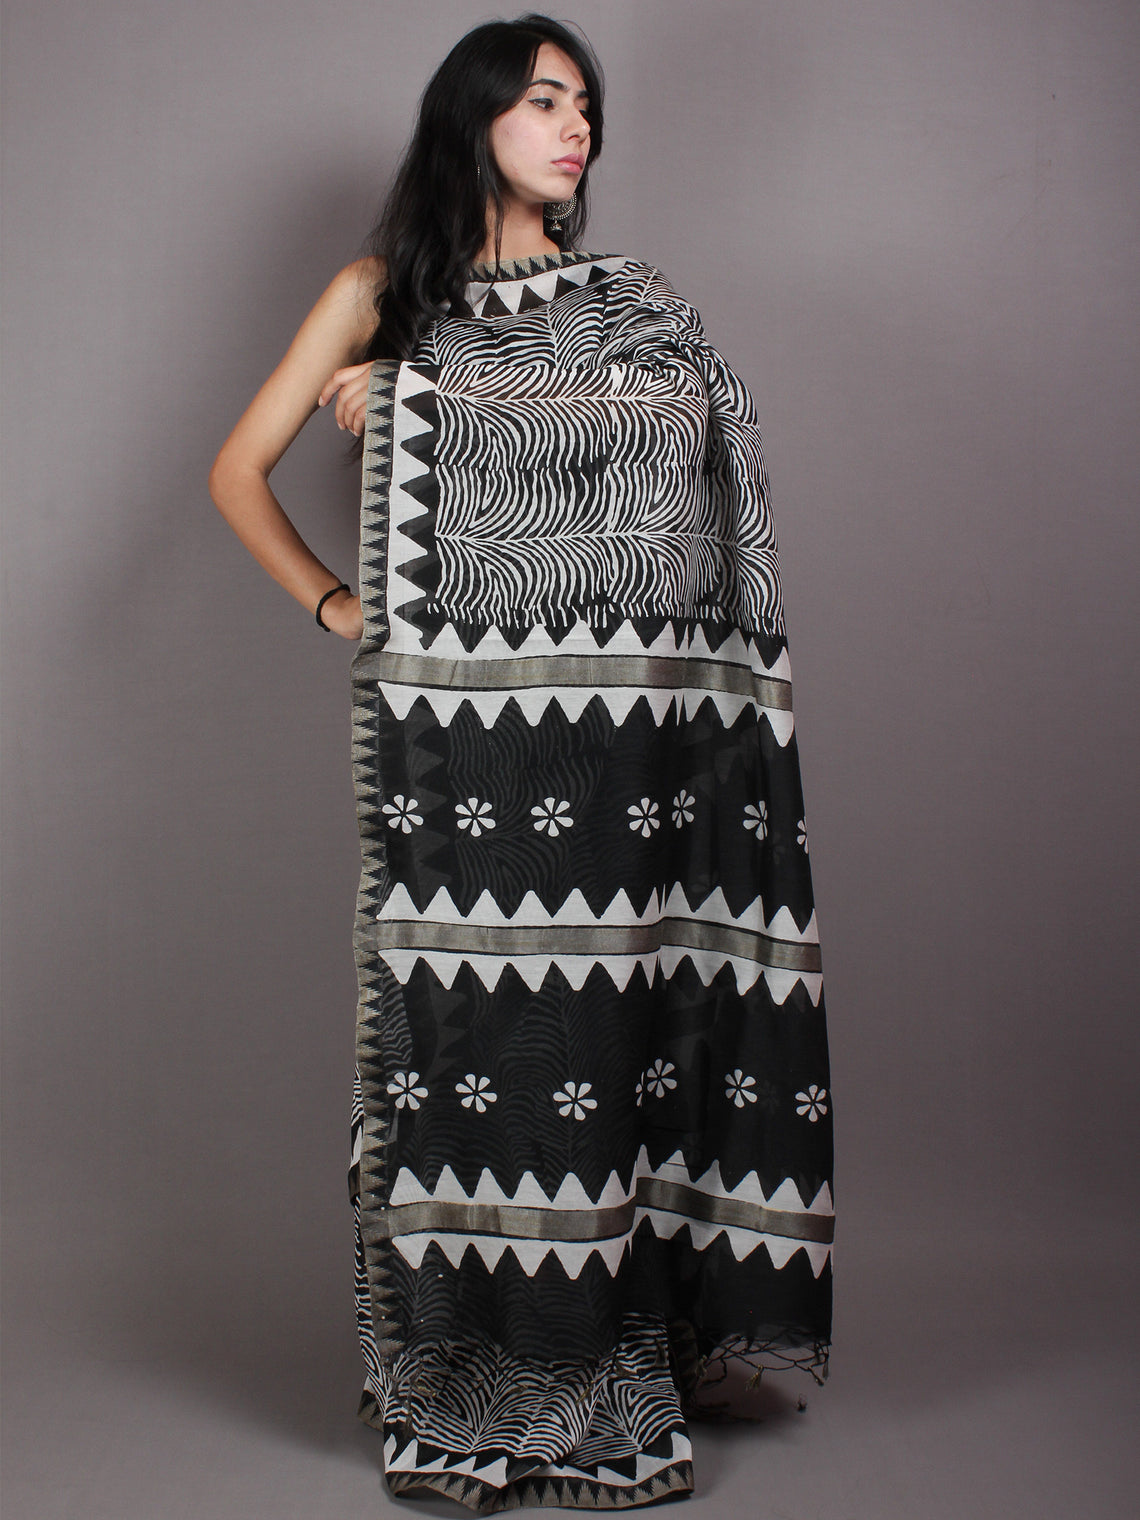 Black Ivory White Hand Block Printed in Natural Vegetable Colors Chanderi Saree With Geecha Border - S03170519